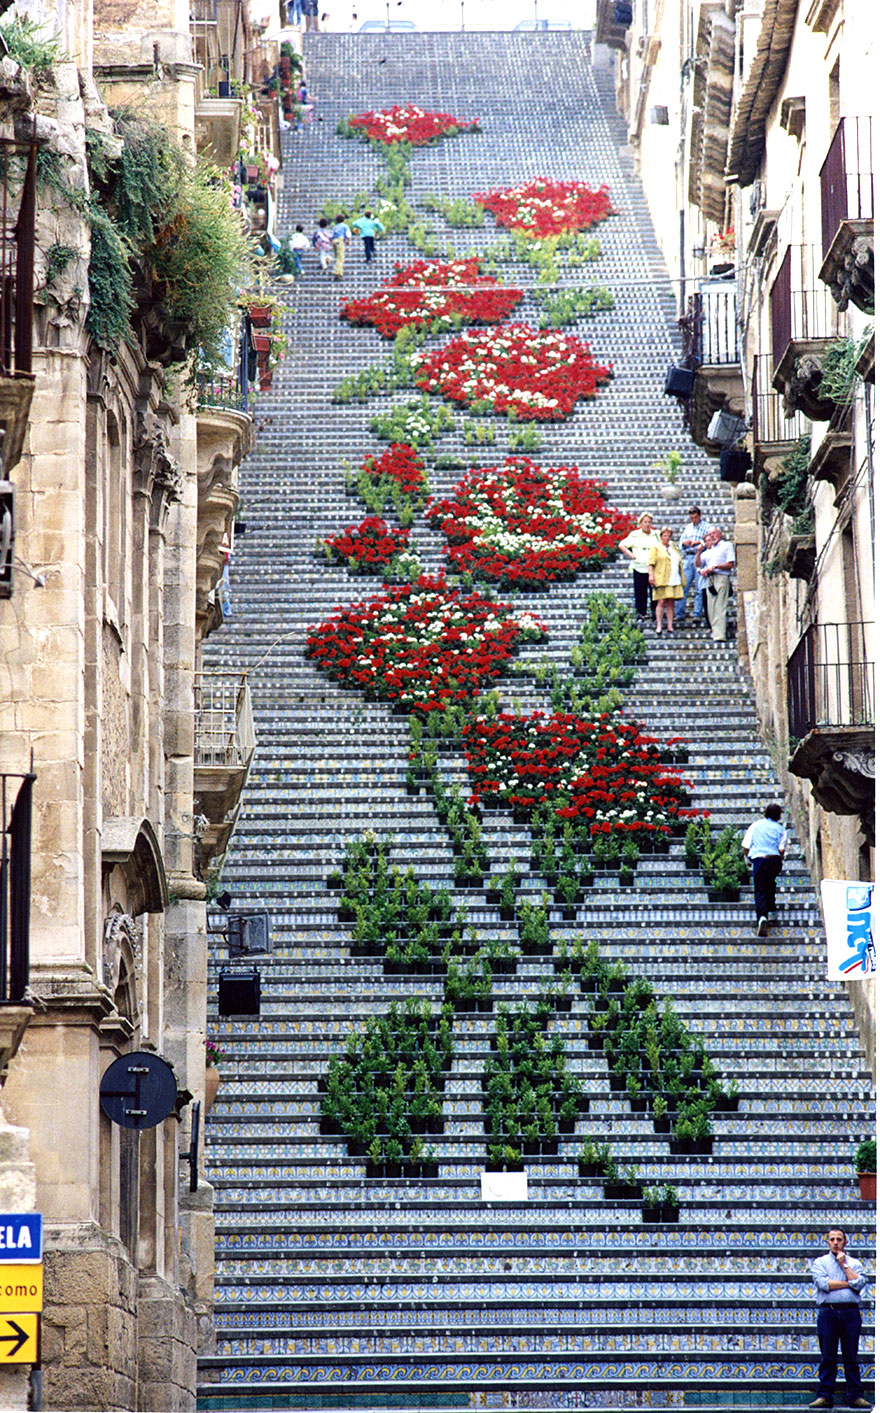 creative-stairs-street-art-8